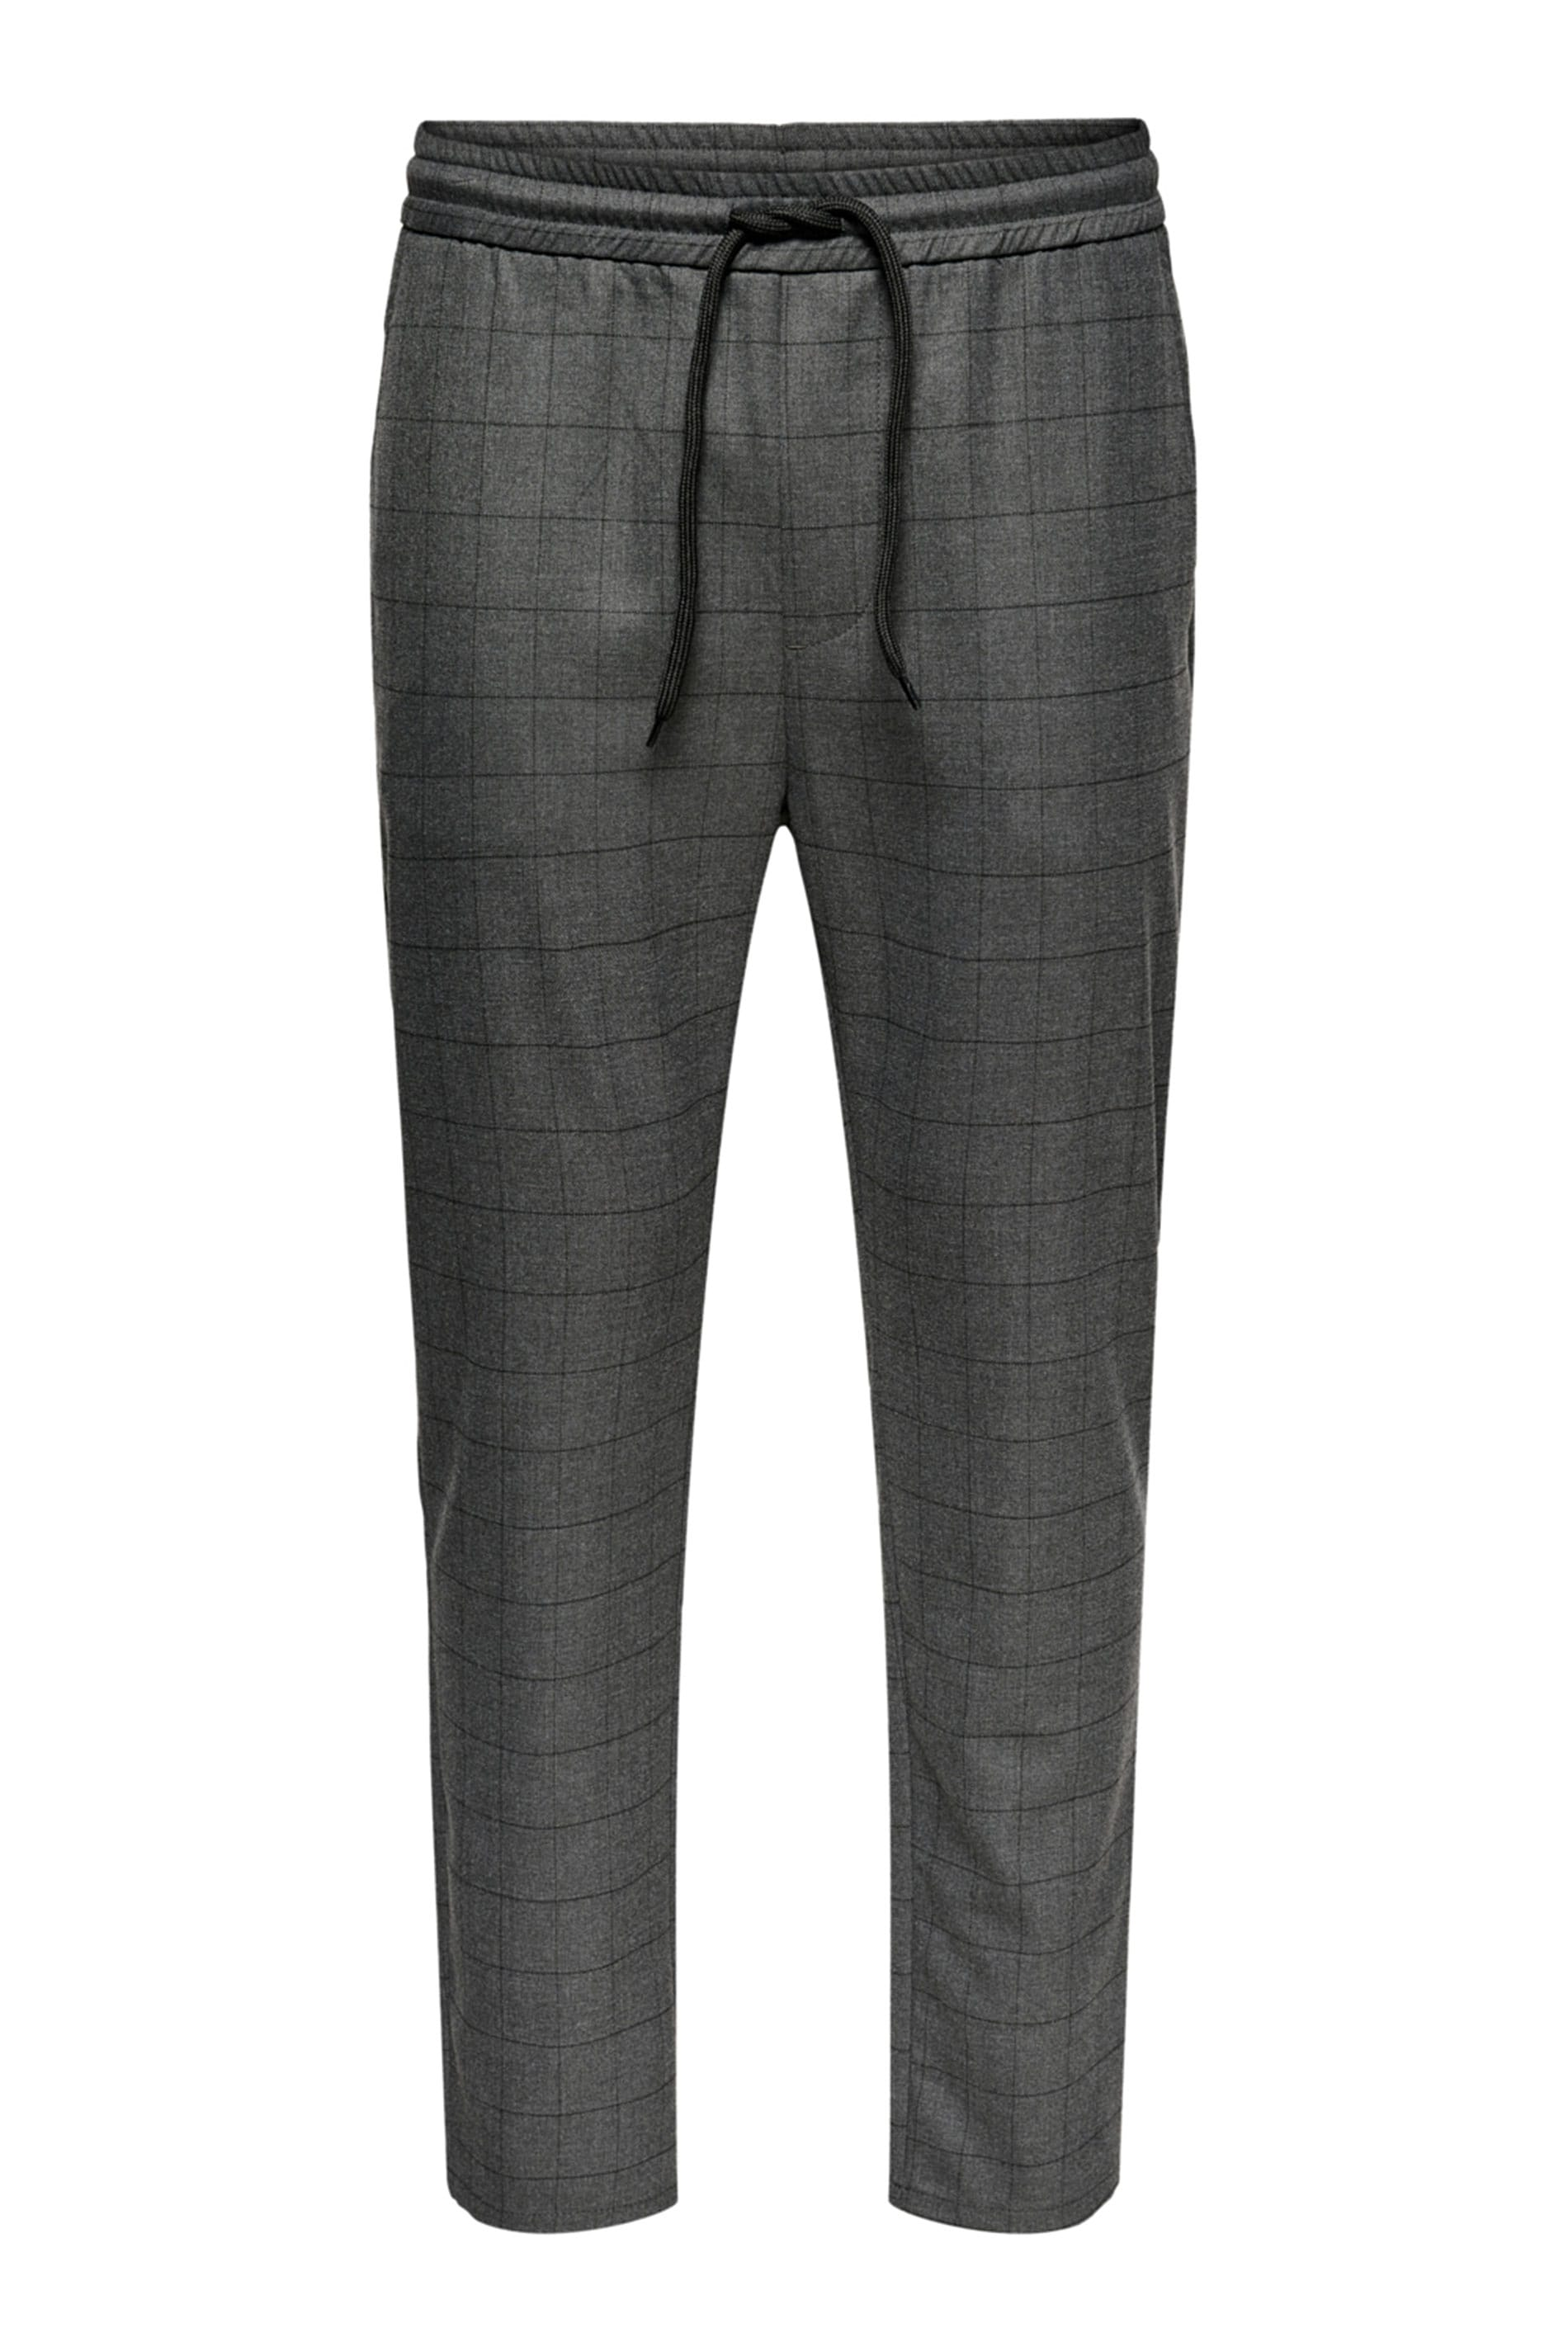 ONLY & SONS Grey Check Trousers